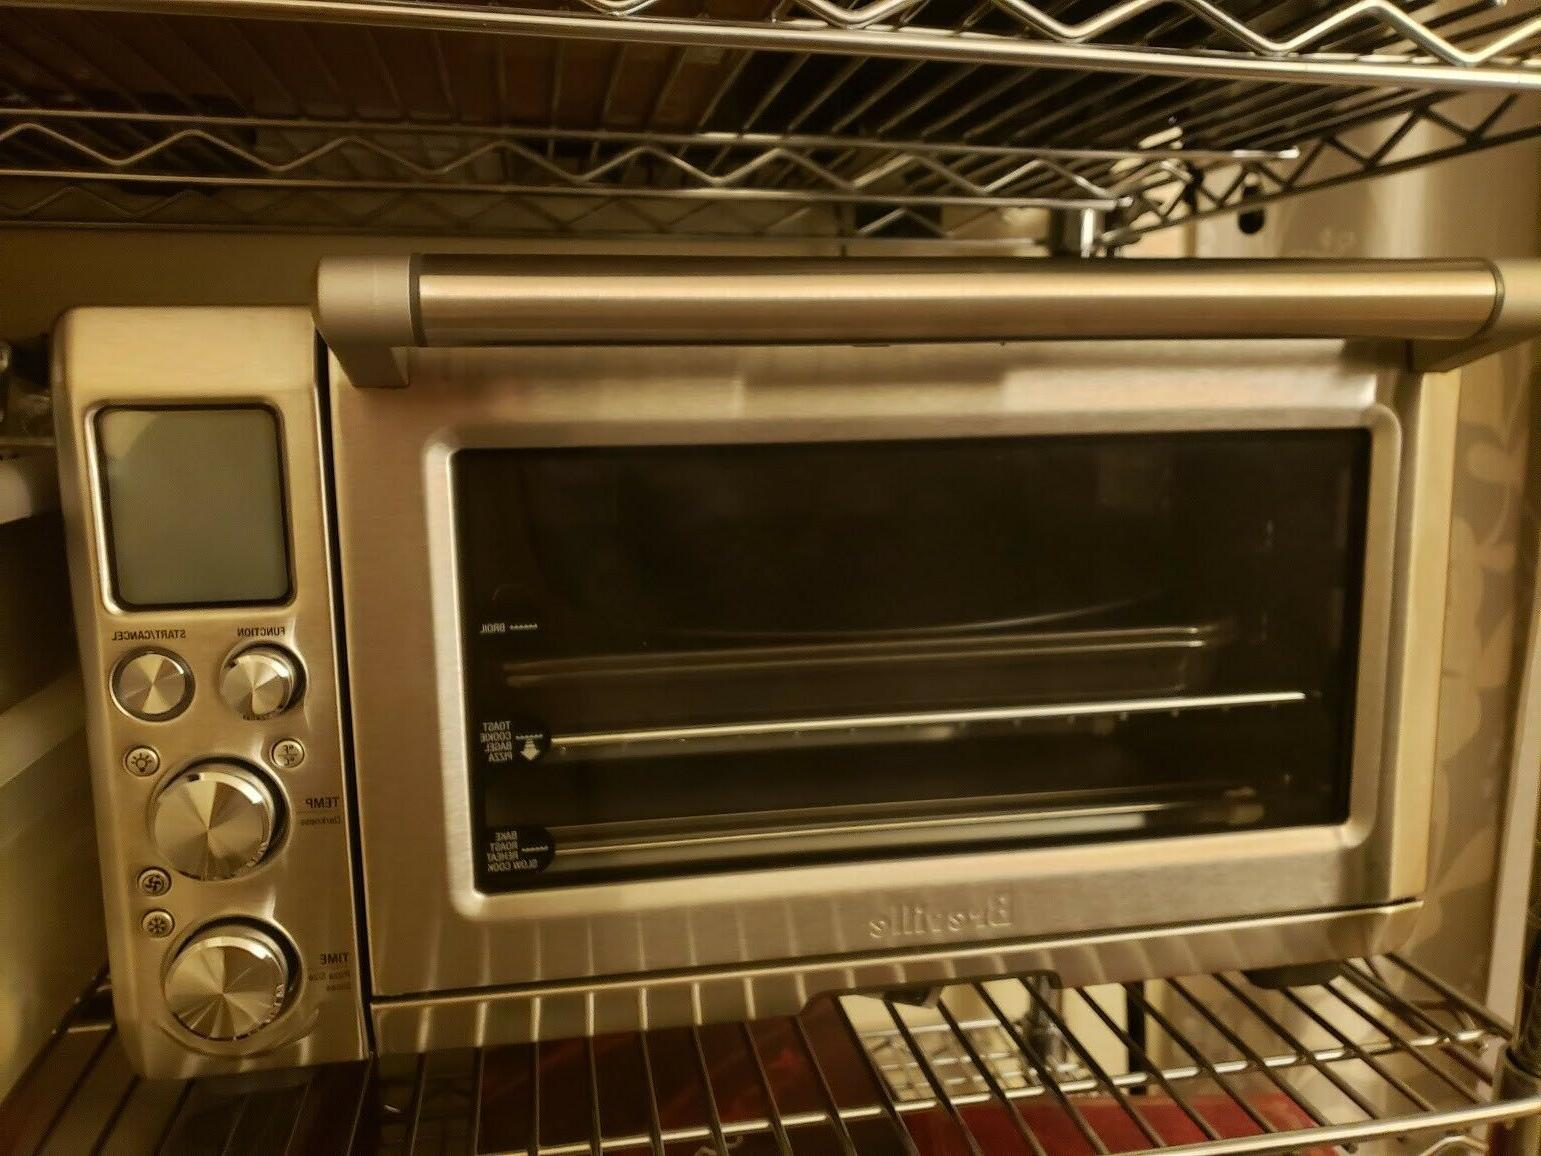 Breville Smart Convection with Element BOV800XL